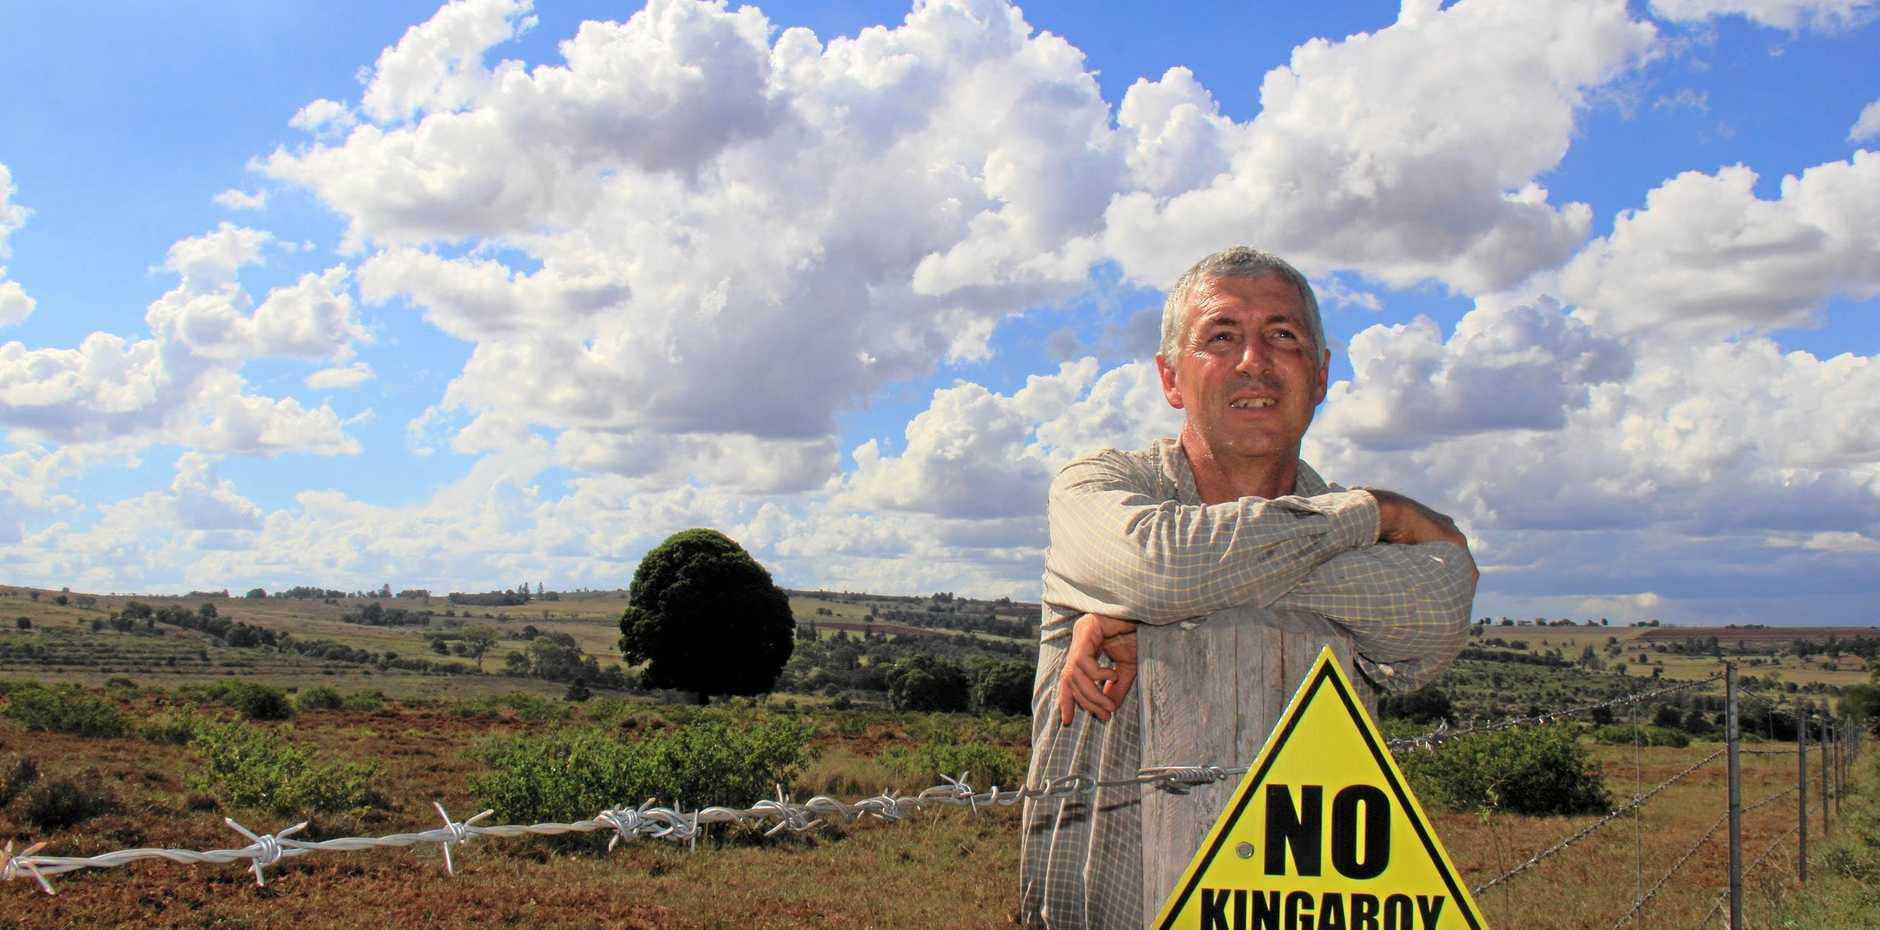 Kingaroy Concerned Citizens Group's John Dalton stands near the Kingaroy mine site.